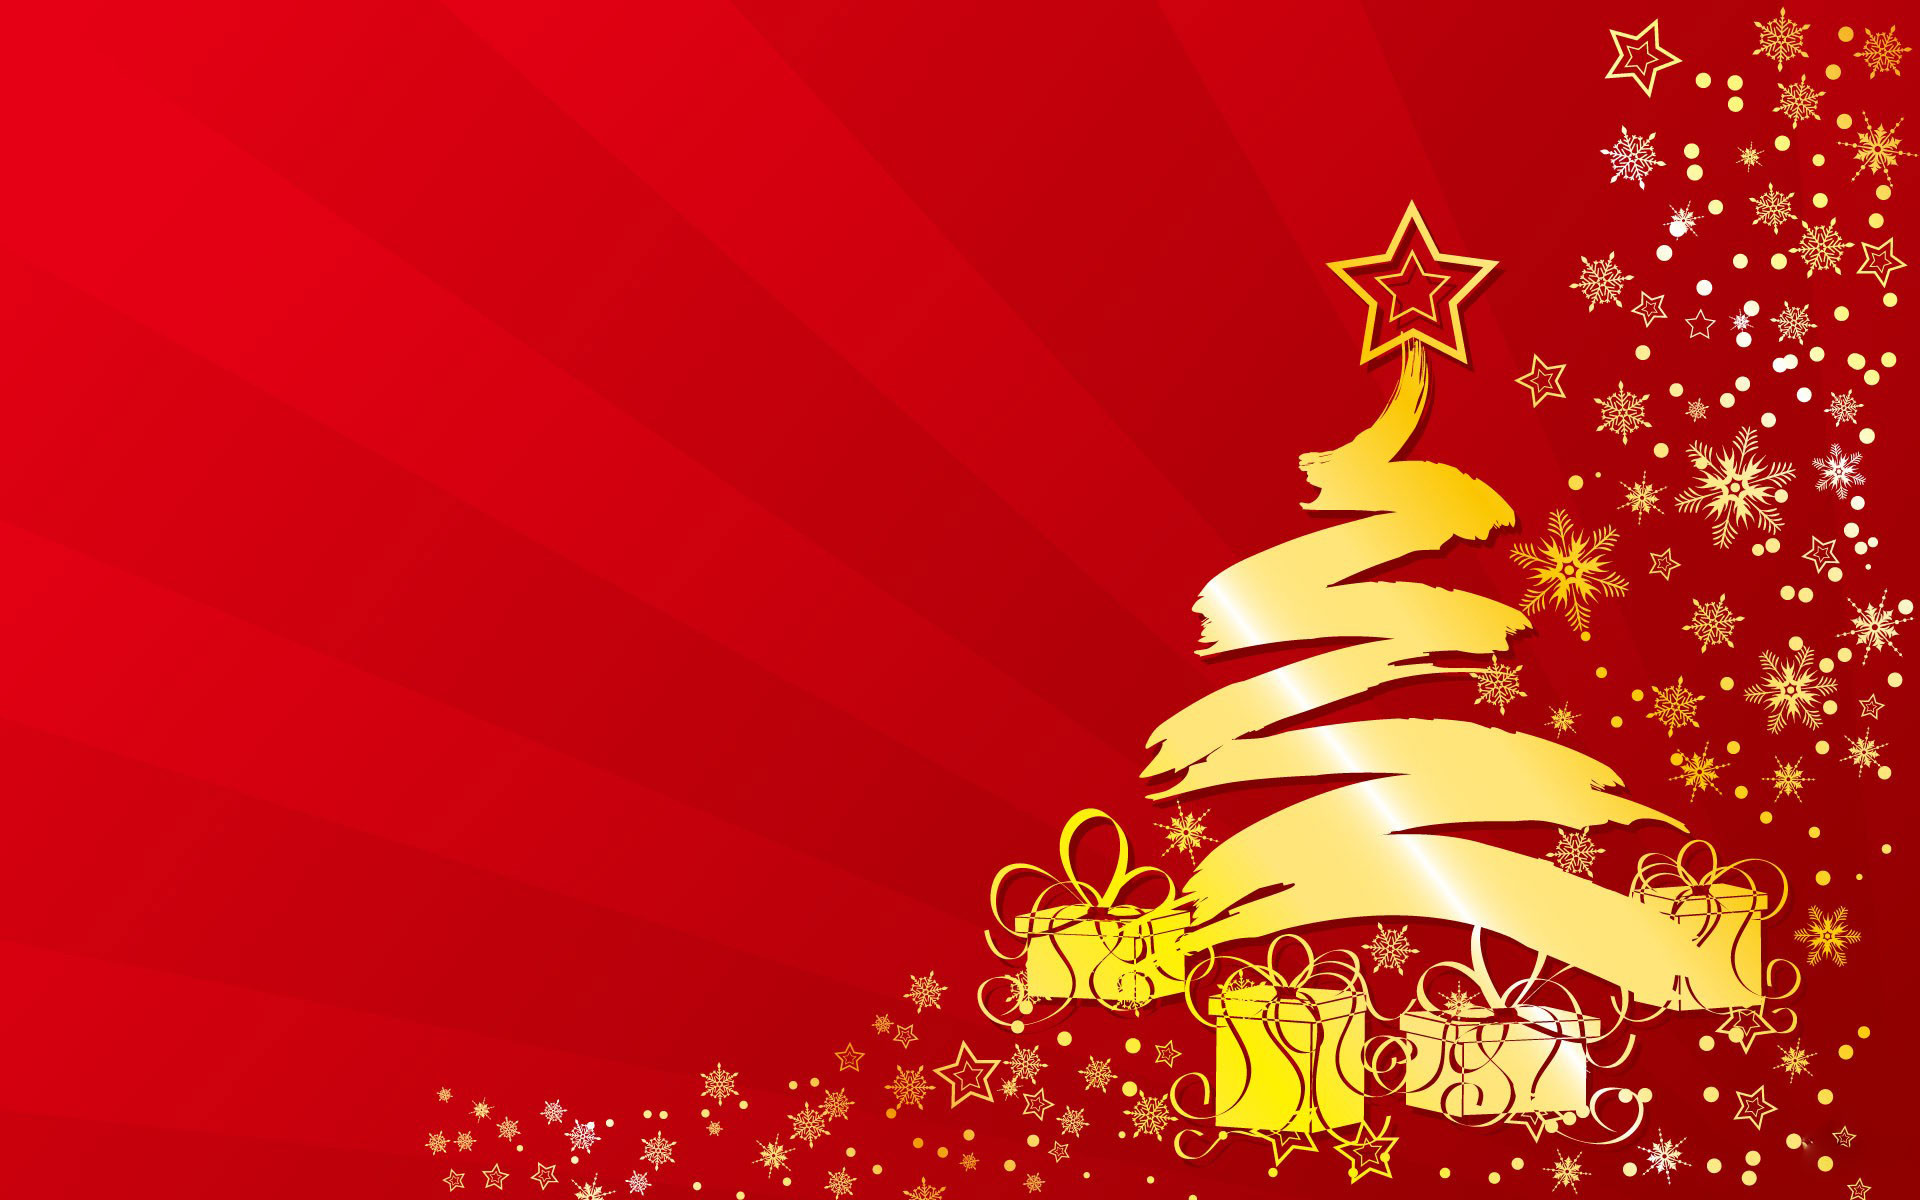 large christmas backgrounds (58+ images)